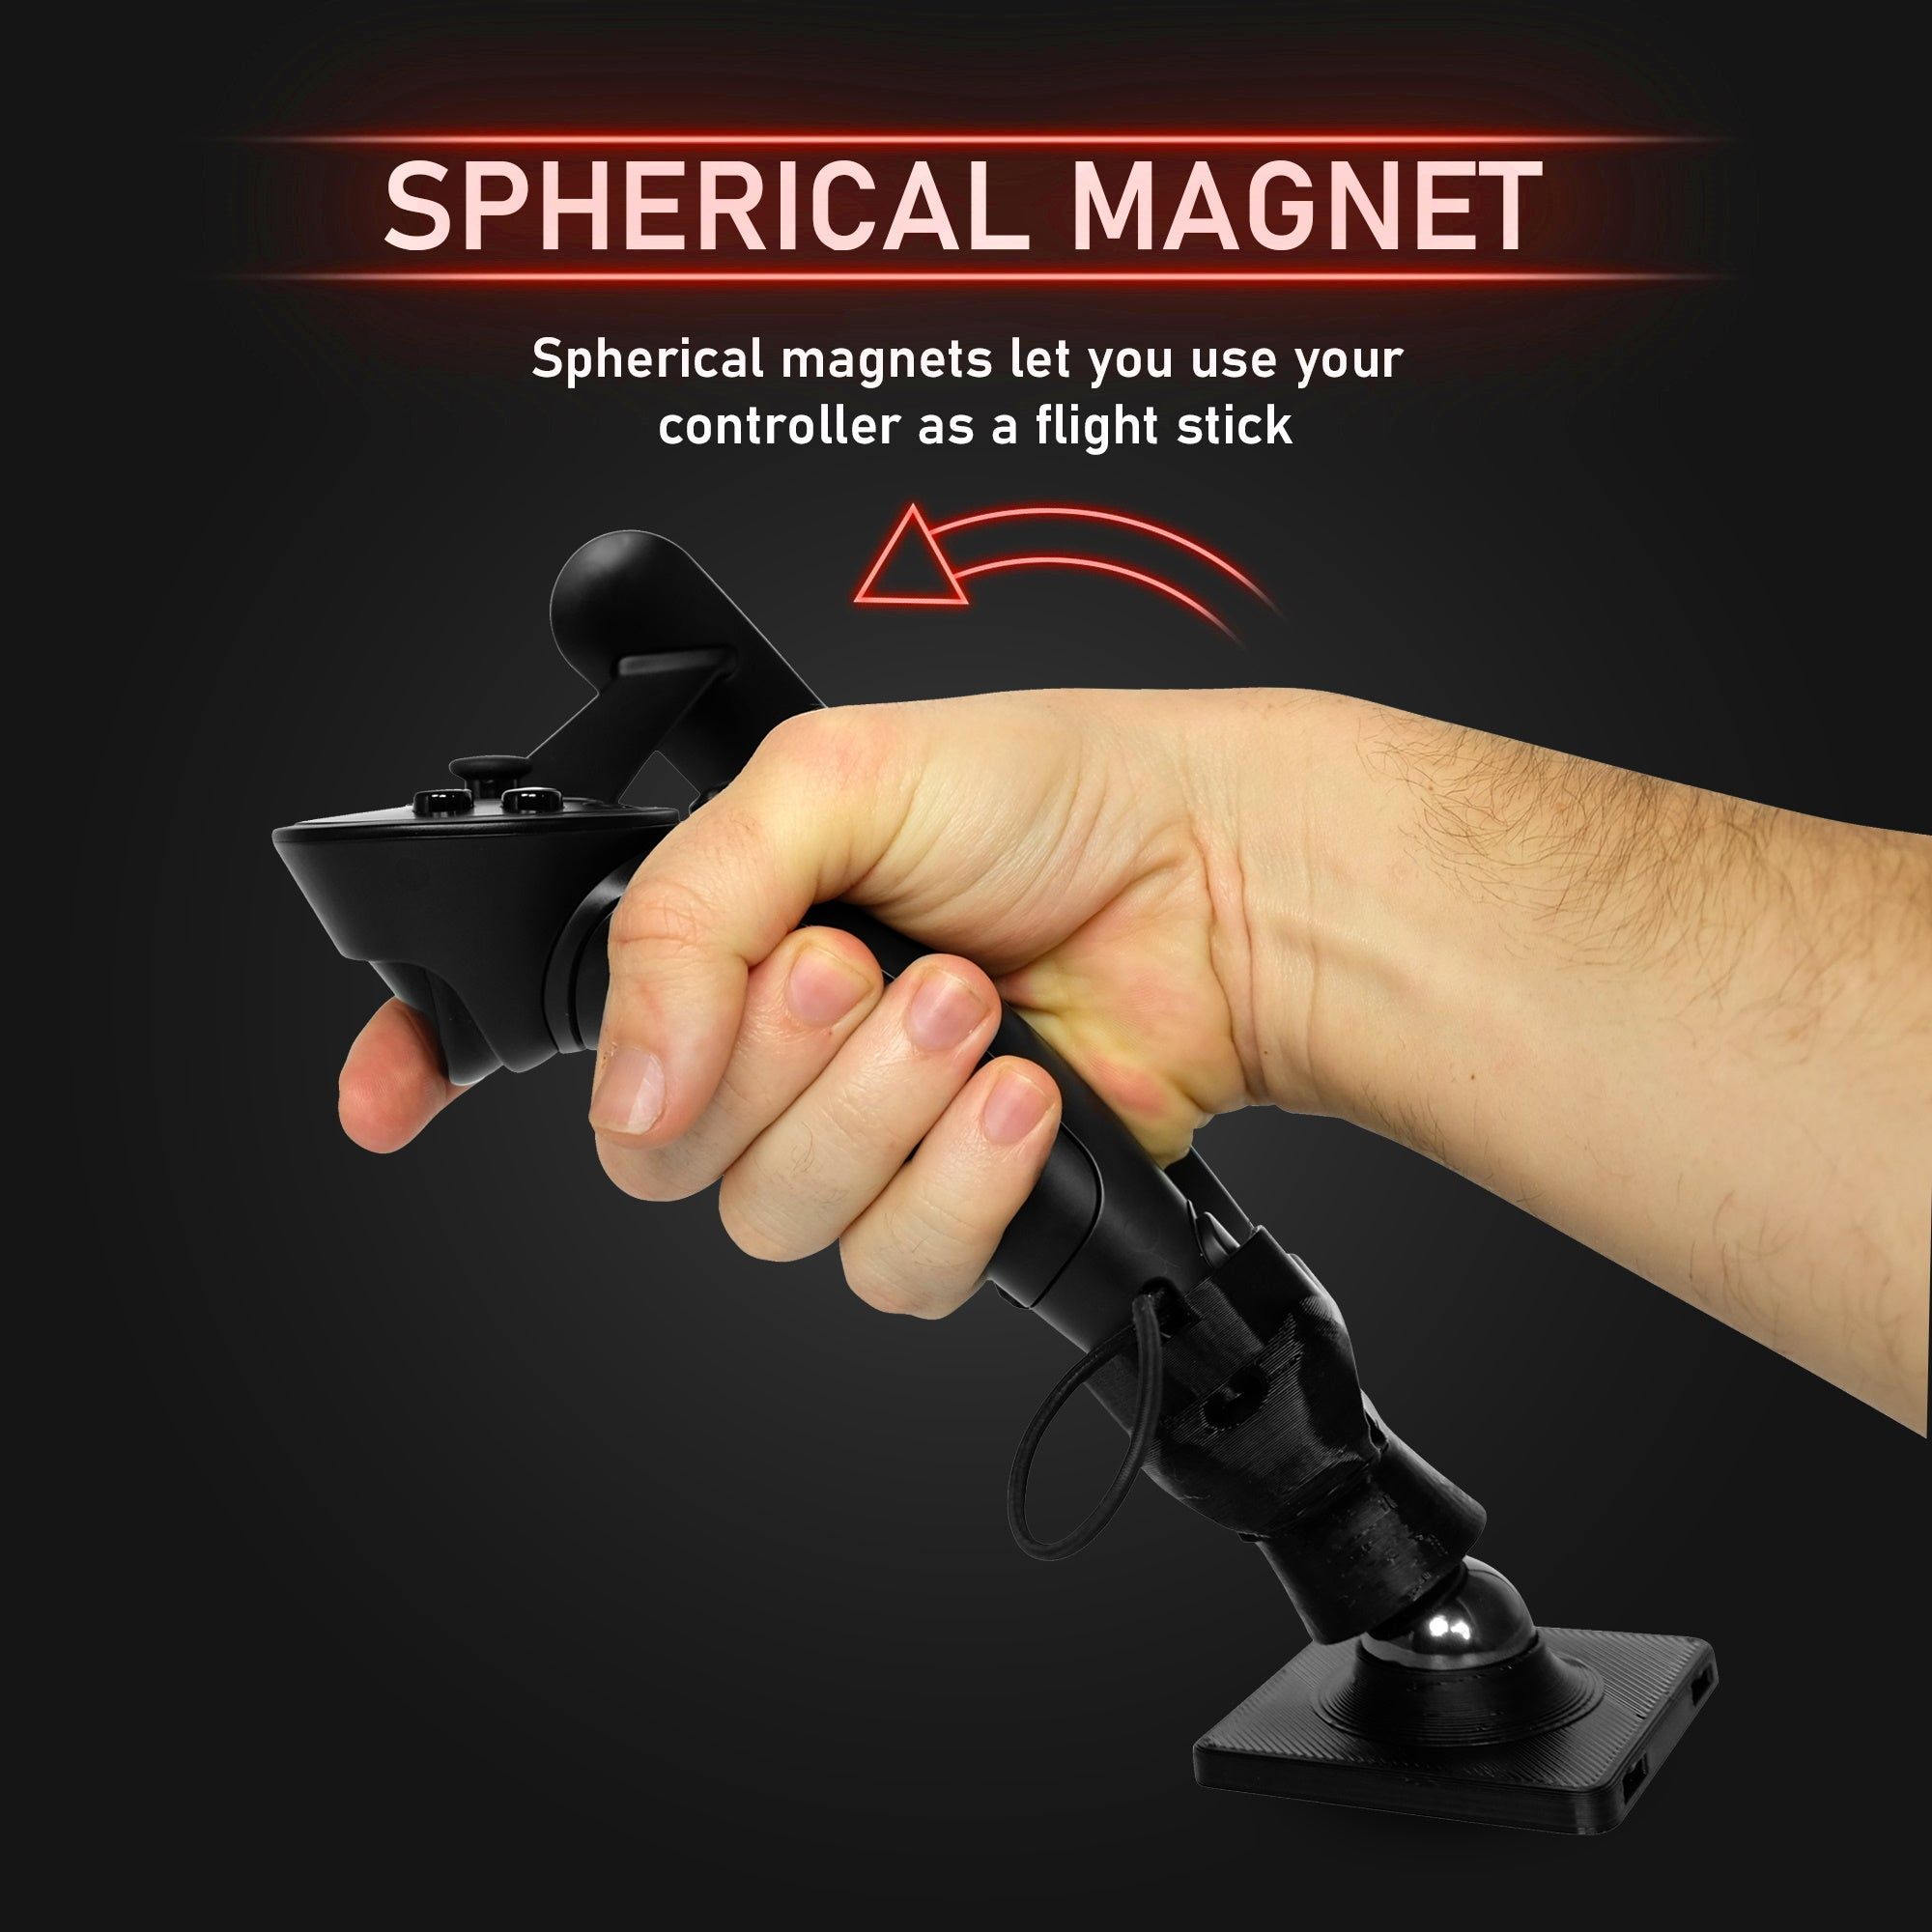 Advanced Flight Stick - Magnetic HOTAS Joystick Adapter for the Valve Index